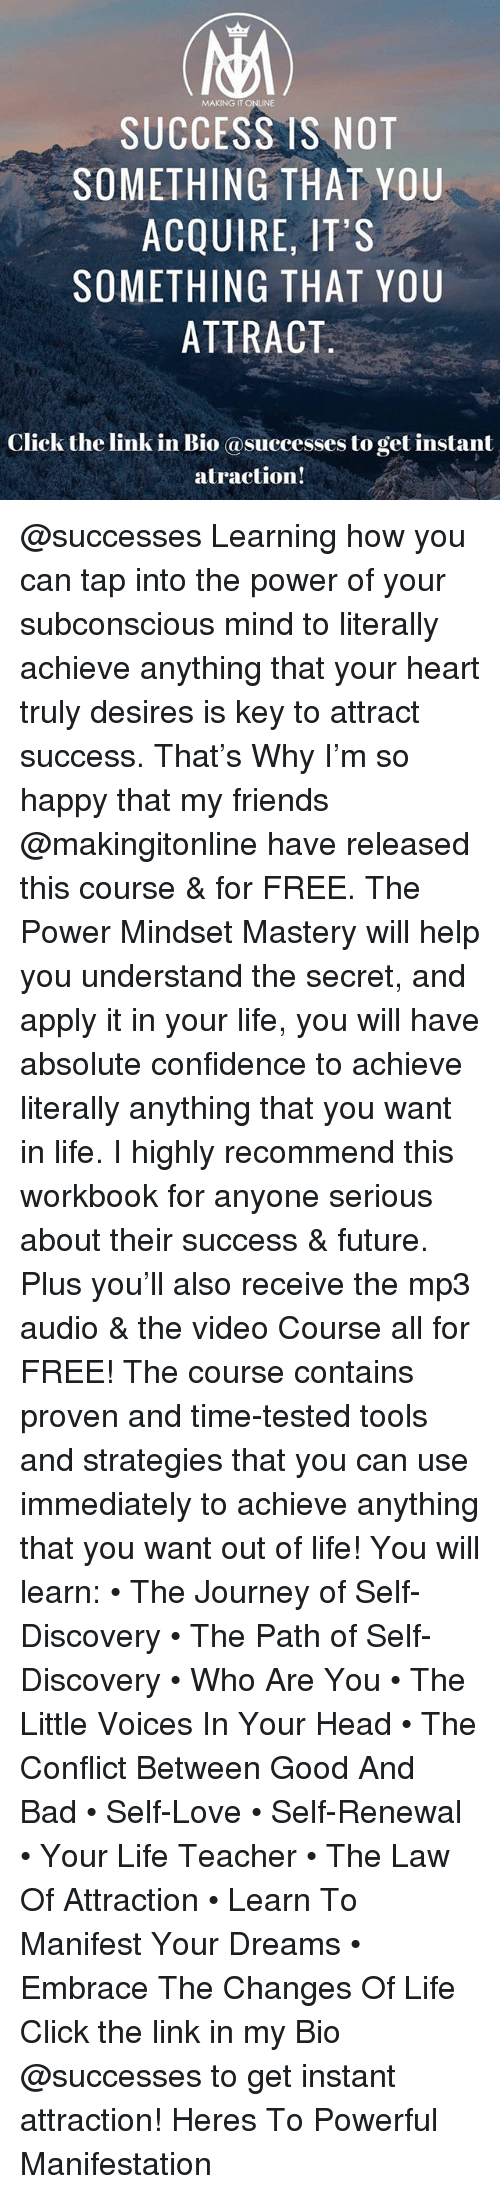 Bad, Click, and Confidence: MAKING IT ONLINE  SUCCESS IS NOT  SOMETHING THAT YOU  ACQUIRE, IT'S  SOMETHING THAT YOU  ATTRACT  k the link in Bio asuccesses to get instant  atraction! @successes Learning how you can tap into the power of your subconscious mind to literally achieve anything that your heart truly desires is key to attract success. That's Why I'm so happy that my friends @makingitonline have released this course & for FREE. The Power Mindset Mastery will help you understand the secret, and apply it in your life, you will have absolute confidence to achieve literally anything that you want in life. I highly recommend this workbook for anyone serious about their success & future. Plus you'll also receive the mp3 audio & the video Course all for FREE! The course contains proven and time-tested tools and strategies that you can use immediately to achieve anything that you want out of life! You will learn: • The Journey of Self-Discovery • The Path of Self-Discovery • Who Are You • The Little Voices In Your Head • The Conflict Between Good And Bad • Self-Love • Self-Renewal • Your Life Teacher • The Law Of Attraction • Learn To Manifest Your Dreams • Embrace The Changes Of Life Click the link in my Bio @successes to get instant attraction! Heres To Powerful Manifestation